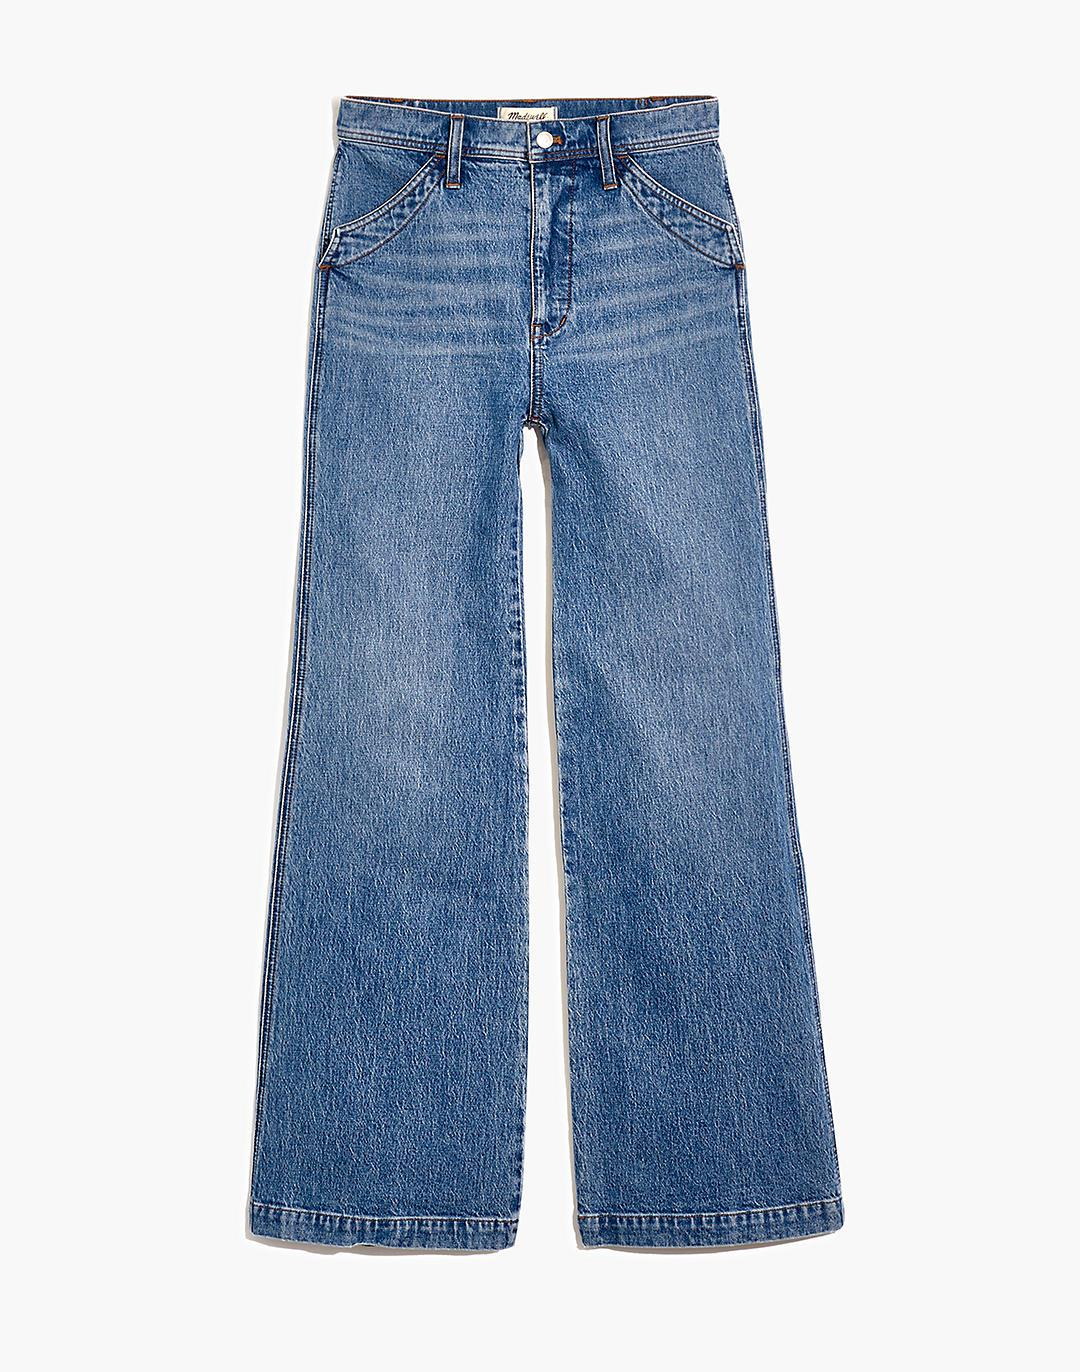 """11"""" High-Rise Flare Jeans in Erickson Wash: Stitched-Pocket Edition 4"""